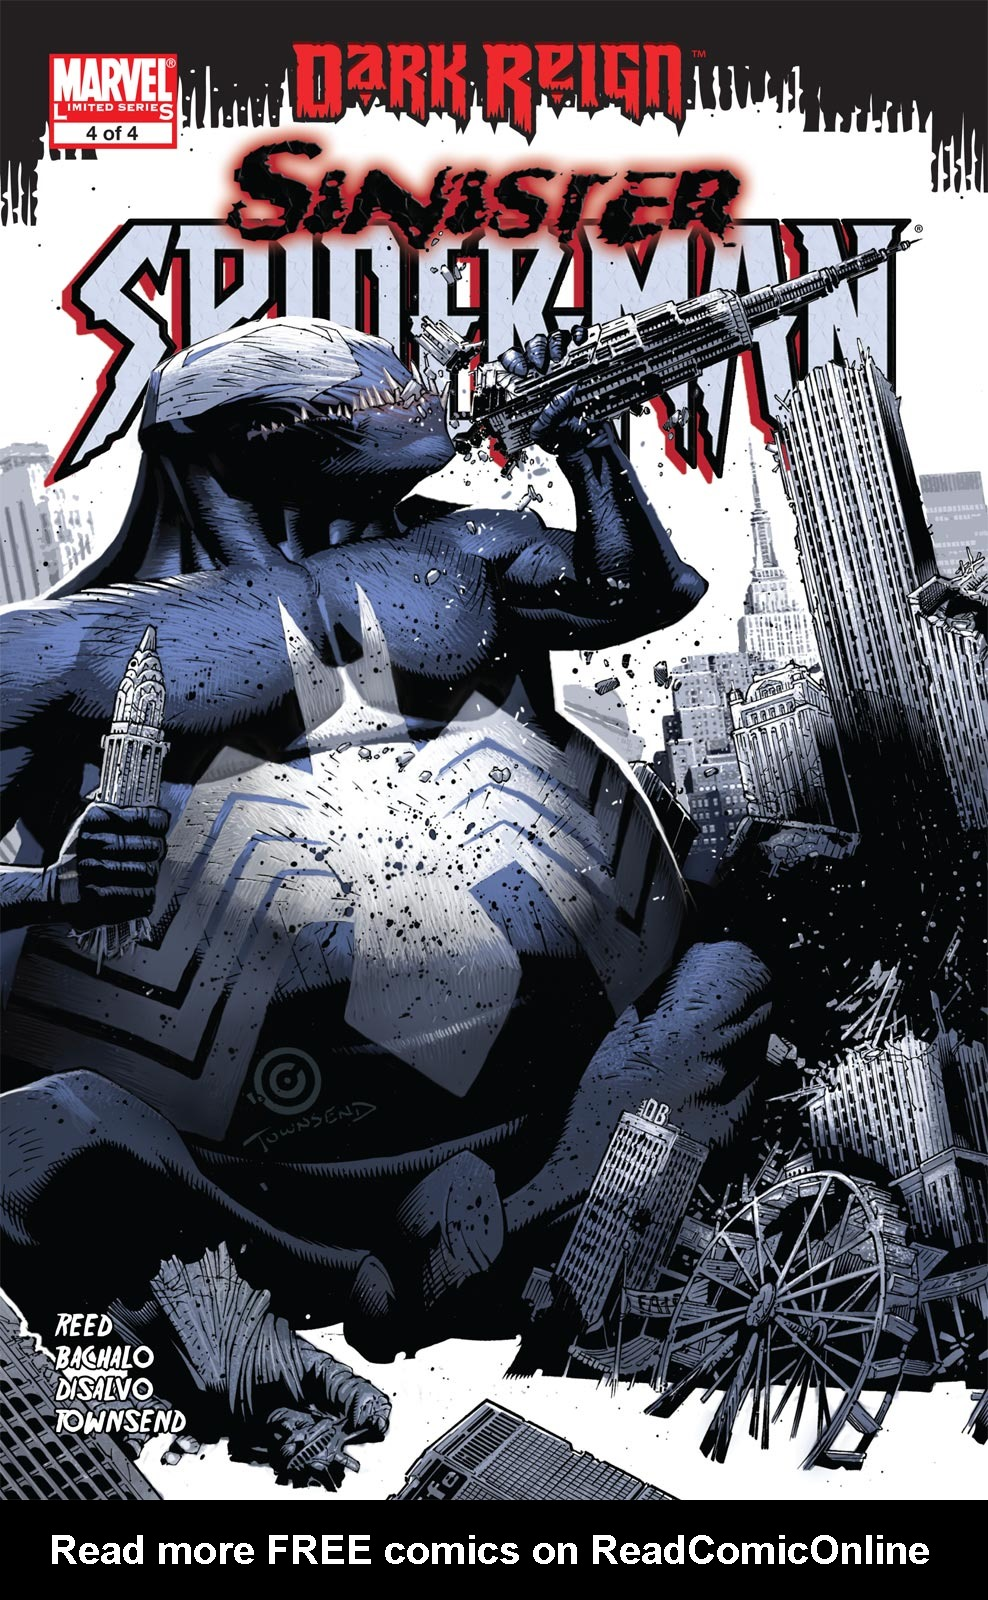 Dark Reign The Sinister Spider Man Issue 4 Read Dark Reign The Sinister Spider Man Issue 4 Comic Online In High Quality Comics Free Comics Comics Online